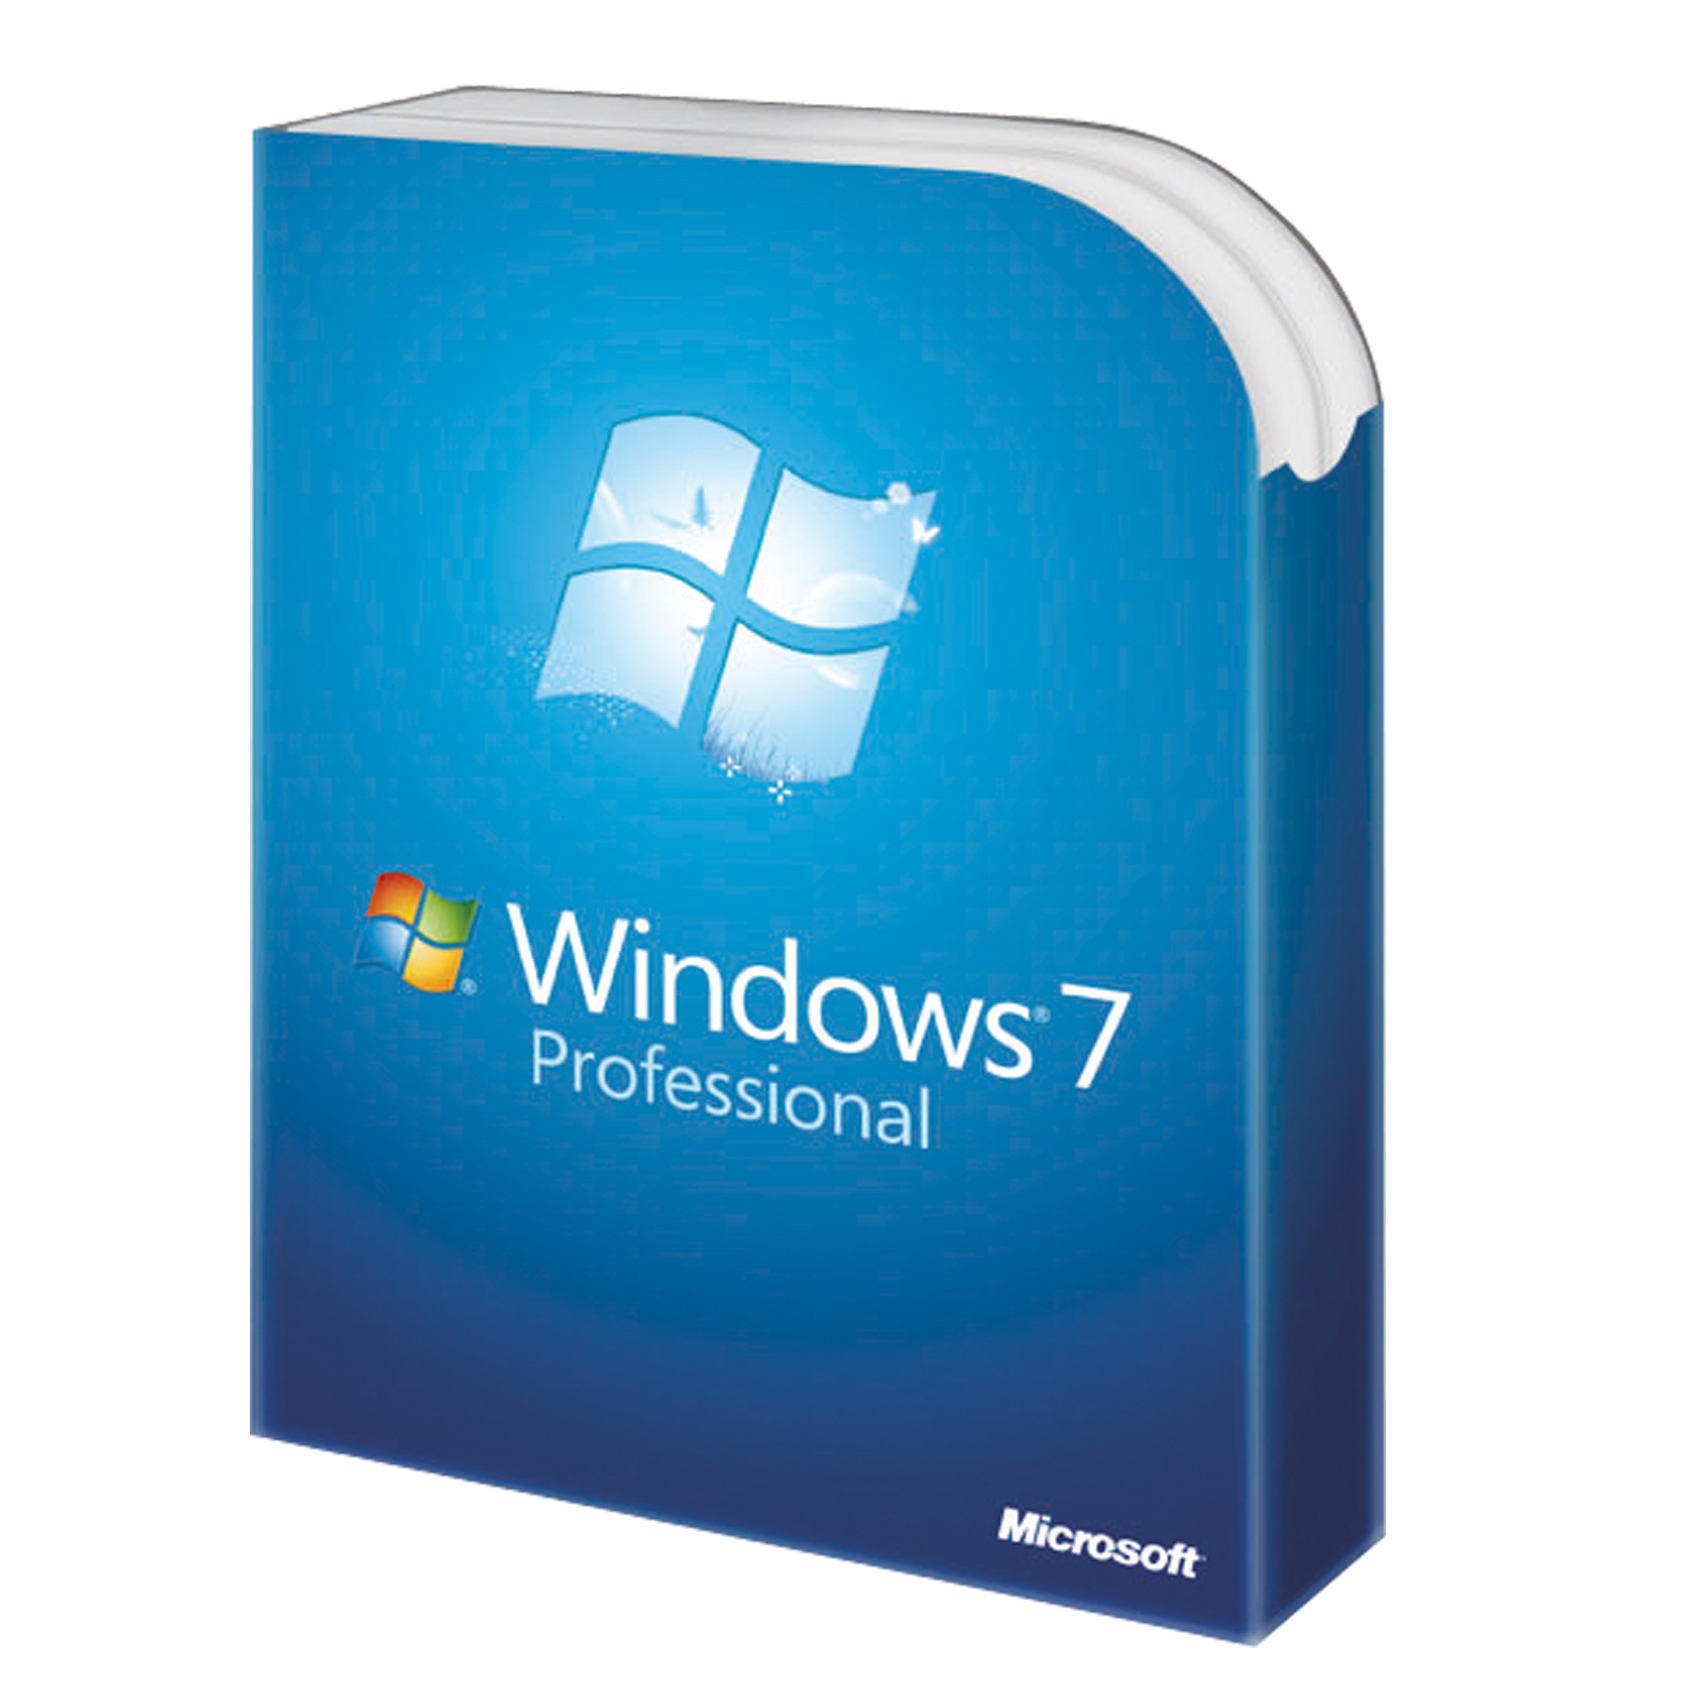 Microsoft Windows 7 Pro Instant Delivery Genuine Usable software digital download